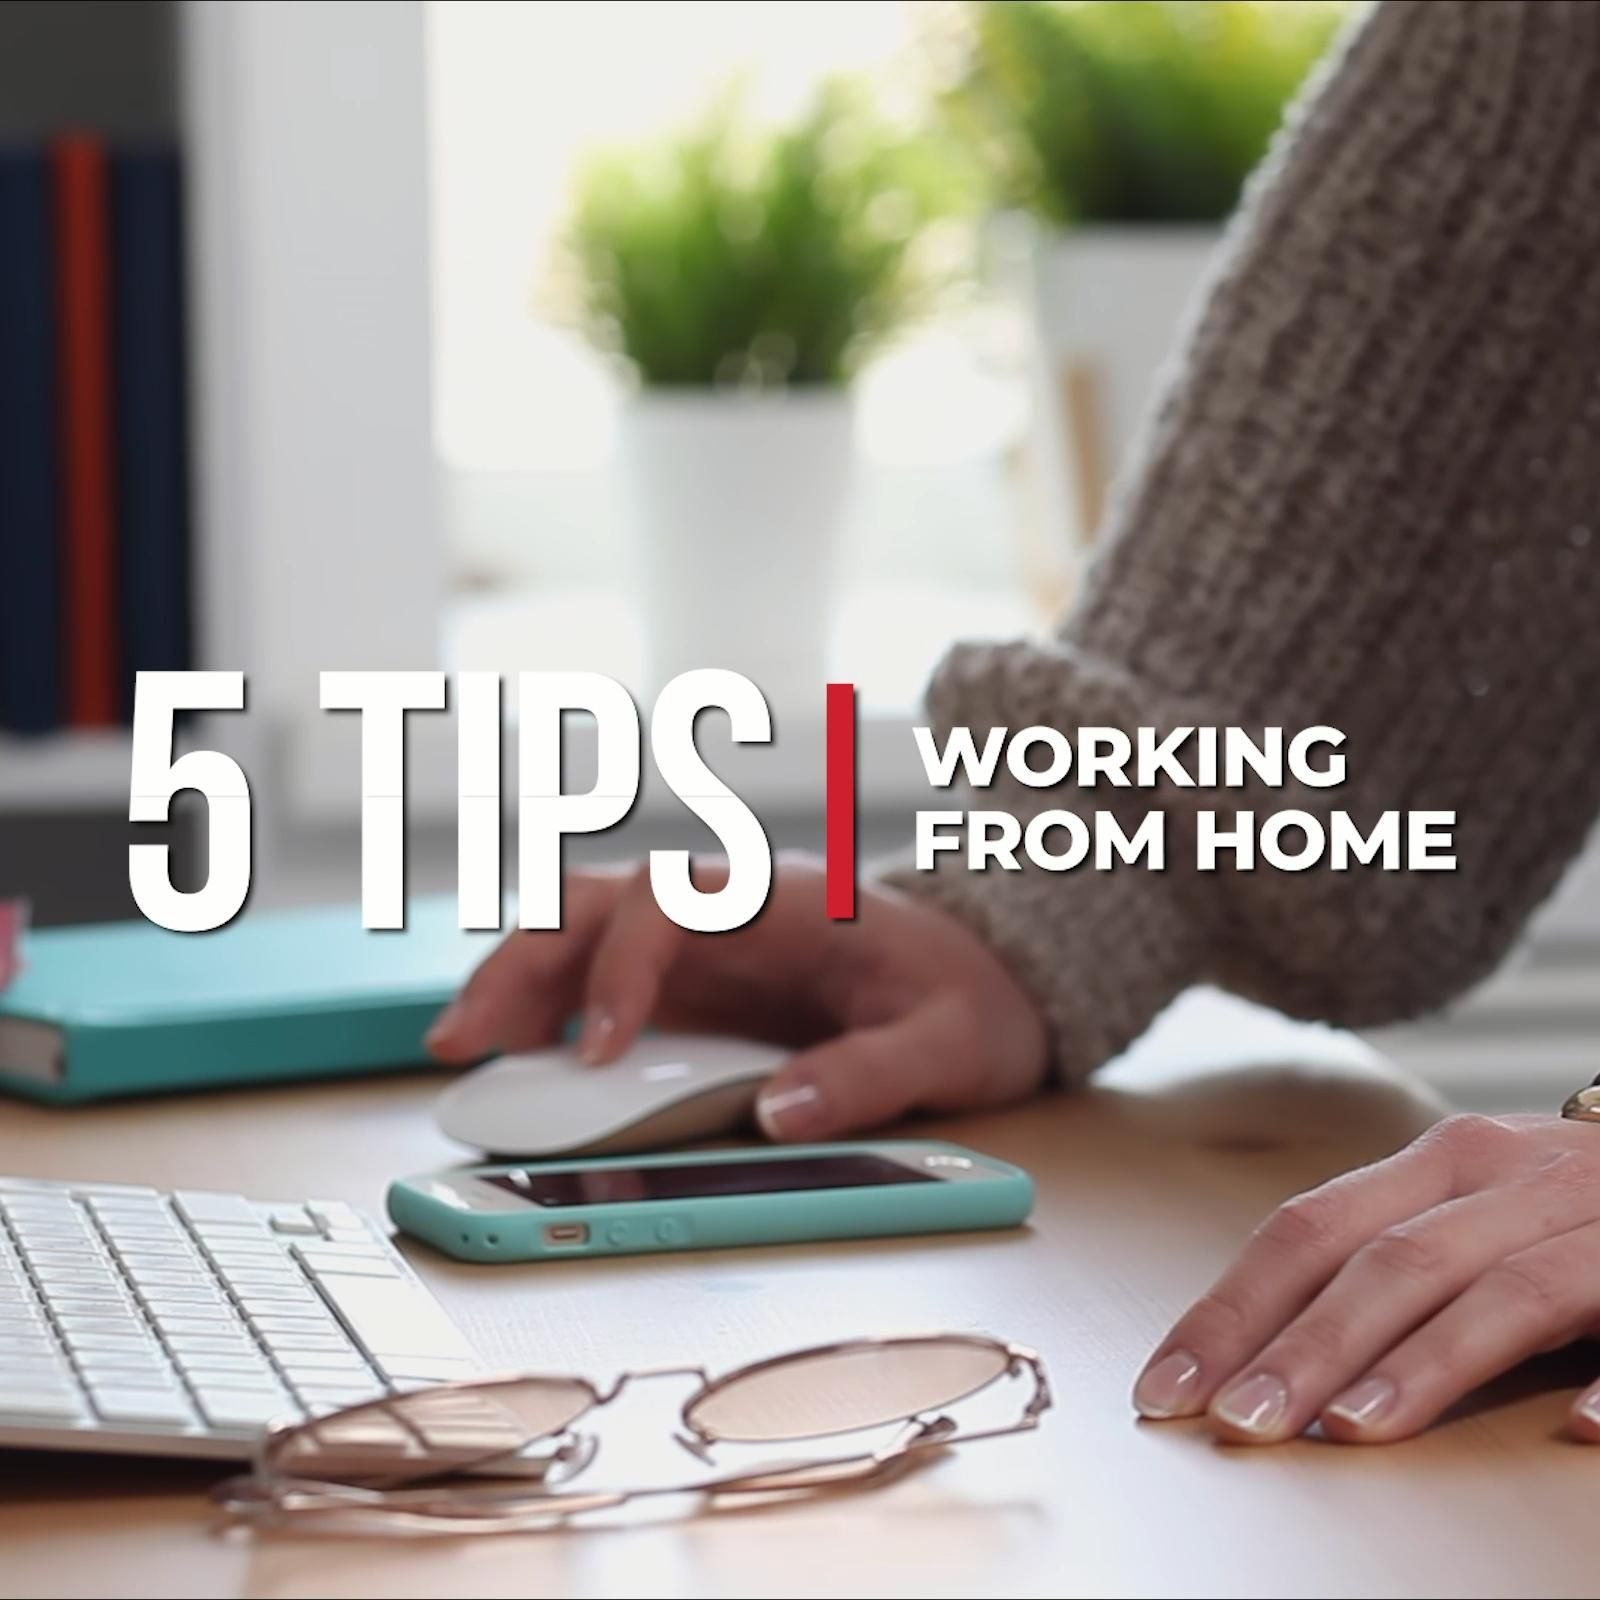 Need help with your new work schedule? Here are 5 tips to make the most of working from home.  #myamcap #home #loans #mortgage #rates #tiptuesday #dreamhouse #dreambuying #workingfromhome #tuesdaythoughts #morethanmortgages